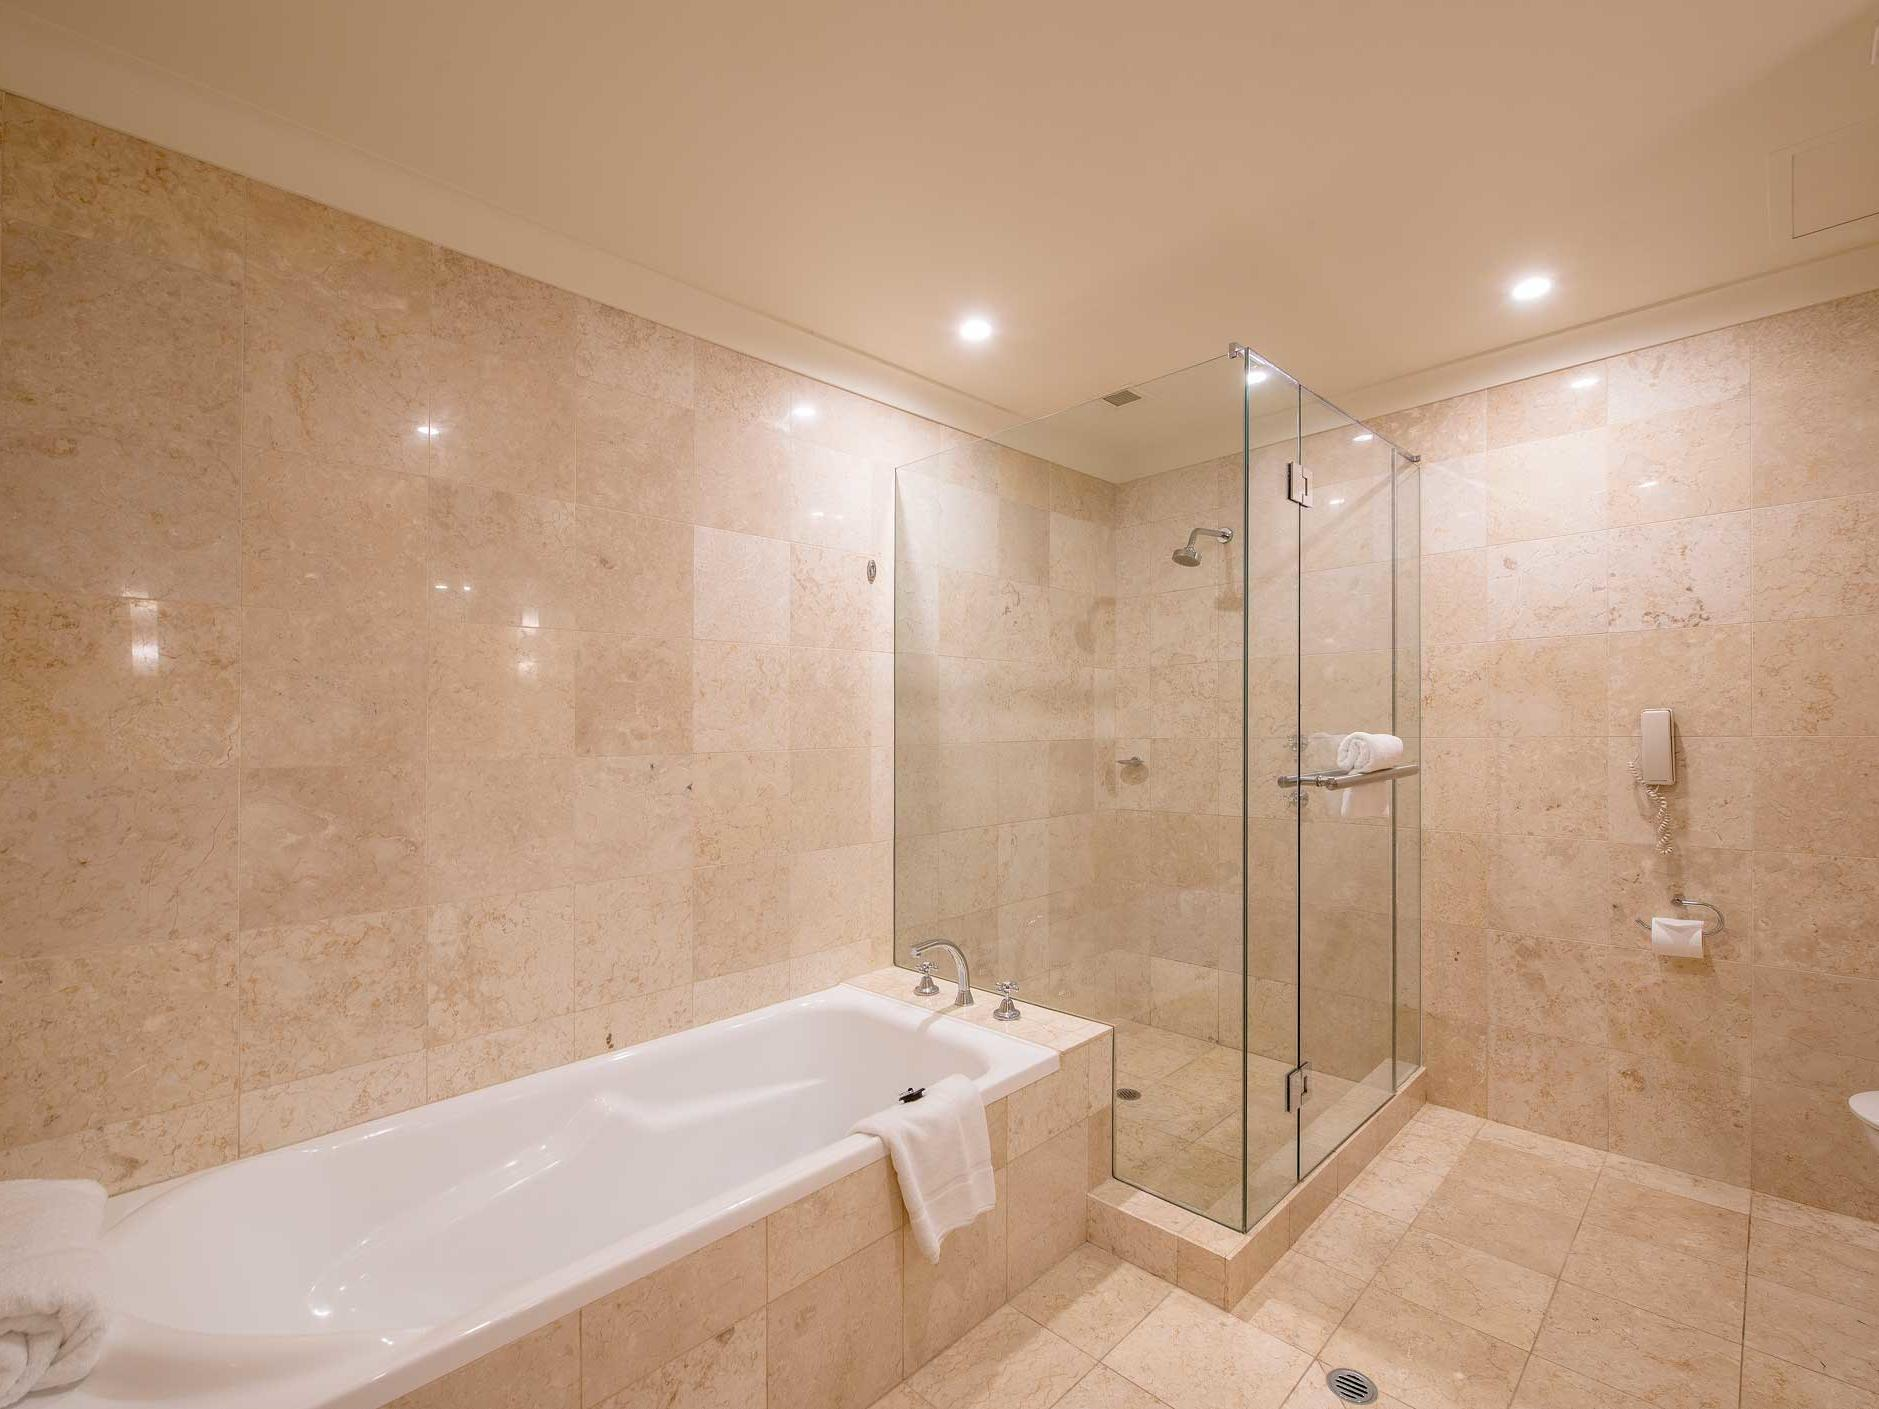 Bathroom of One Bedroom Suite at Duxton Hotel Perth